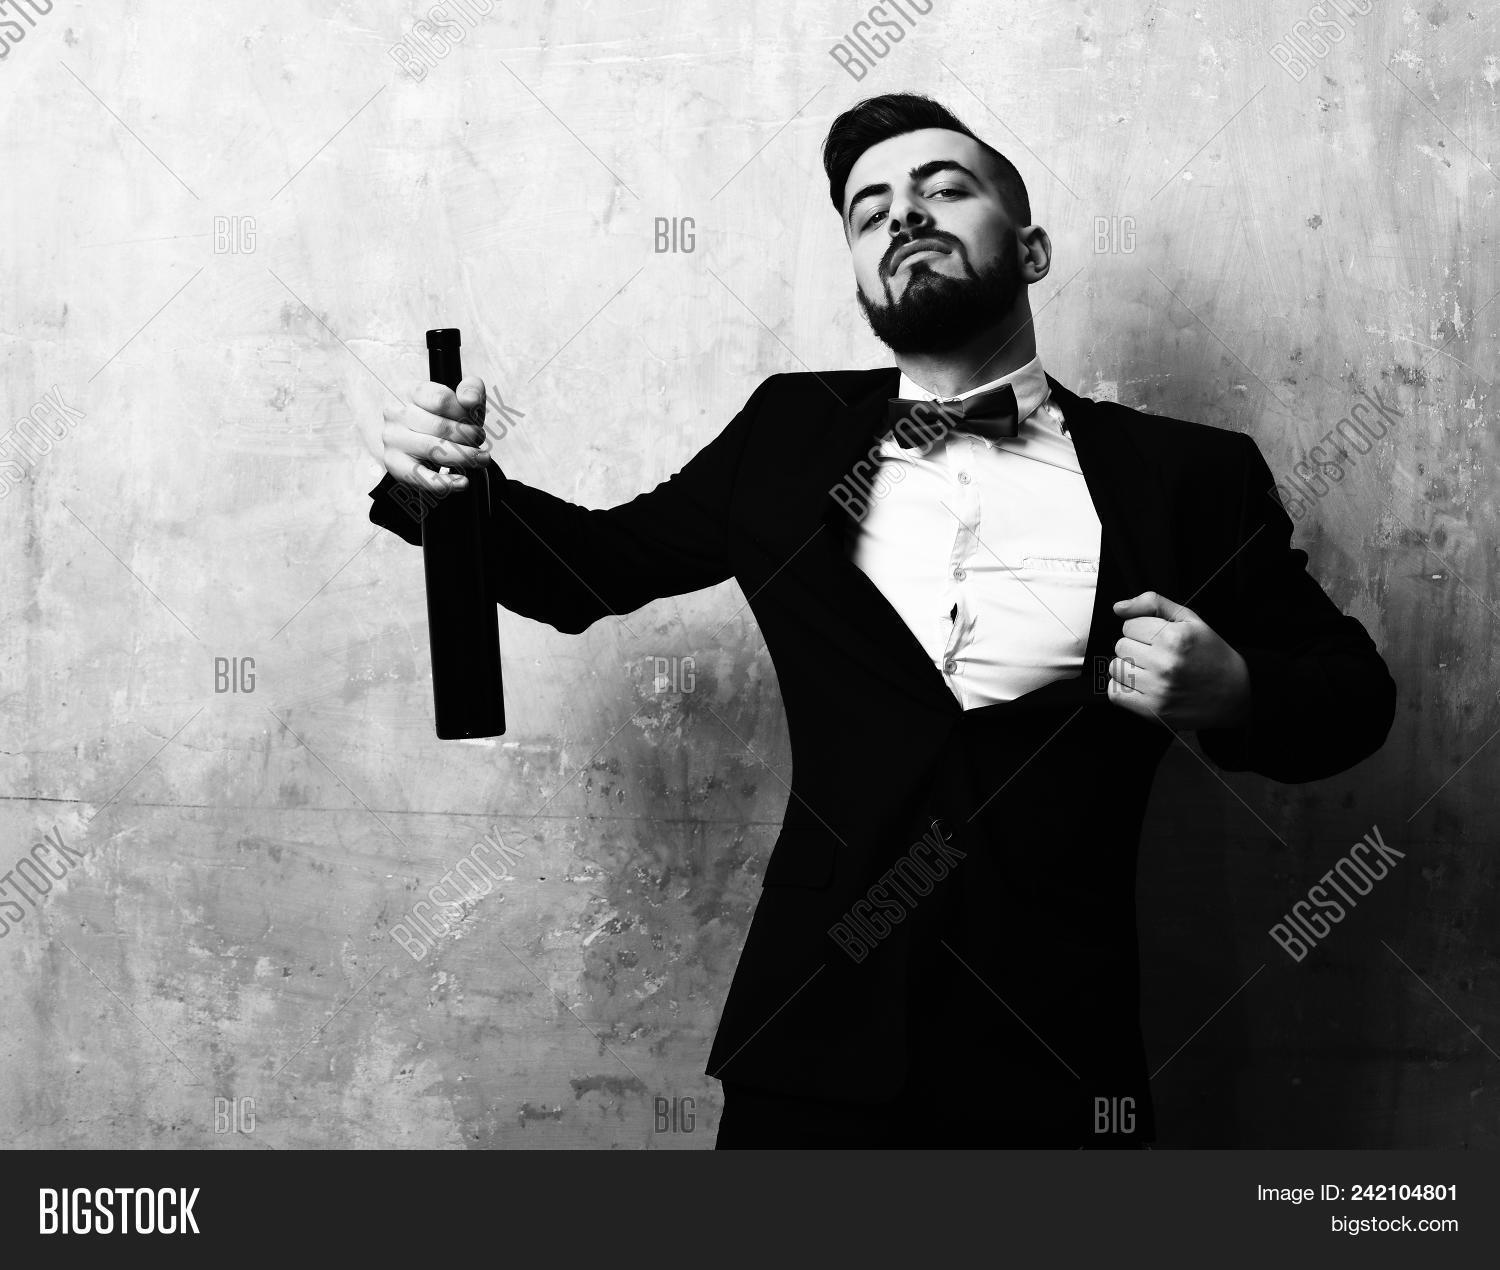 alcohol,alcoholic,background,barbershop,beard,bearded,beige,beverage,black,bottle,bow,businessman,caucasian,classic,classy,concept,drink,elegant,expression,face,familiar,friday,glass,haircut,handsome,leisure,liquid,male,man,moustache,night,old,party,red,relax,spirits,suit,time,unshaved,unshaven,vintage,wall,wine,young